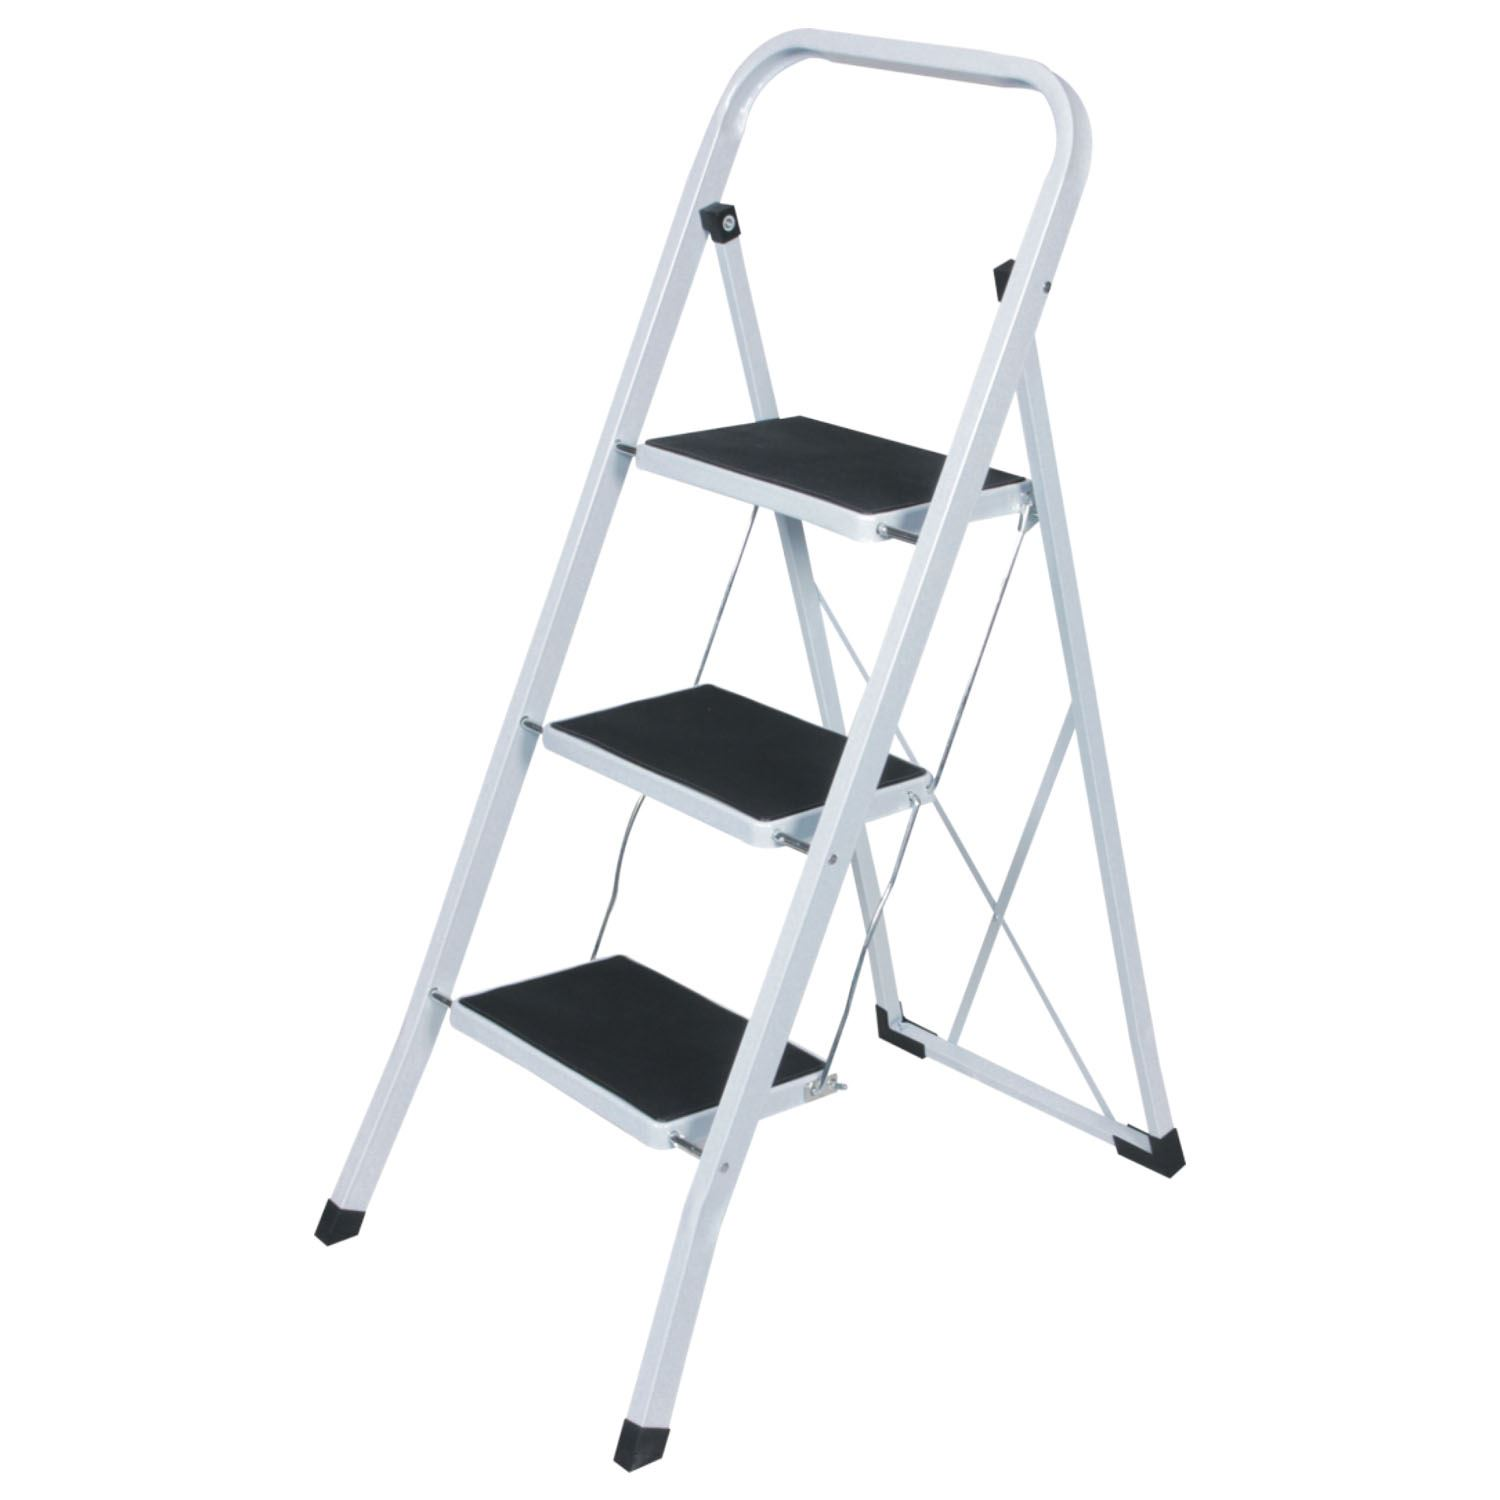 2 3 4 Heavy Duty Foldable Step Ladder Strong Folding Non